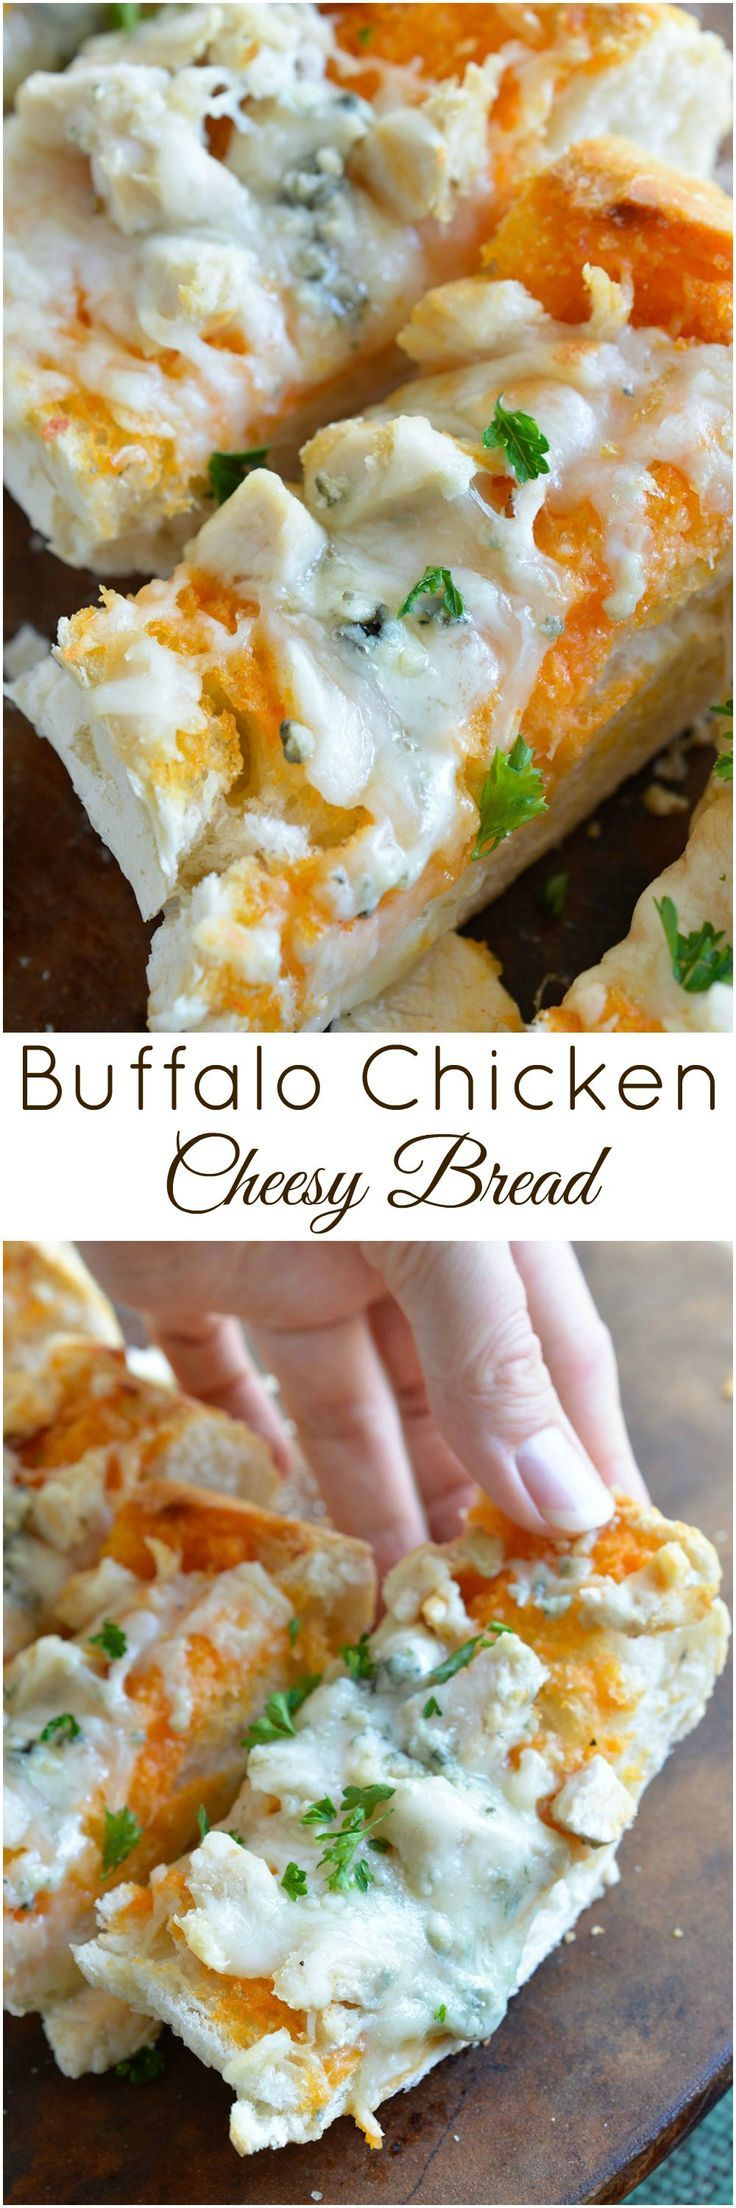 Buffalo Chicken Cheesy Bread is an easy and flavorful game day appetizer! Buffalo wing sauce, chicken and blue cheese come together in this hot, melty cheesy bread recipe. #appetizer wonkywonderful.com